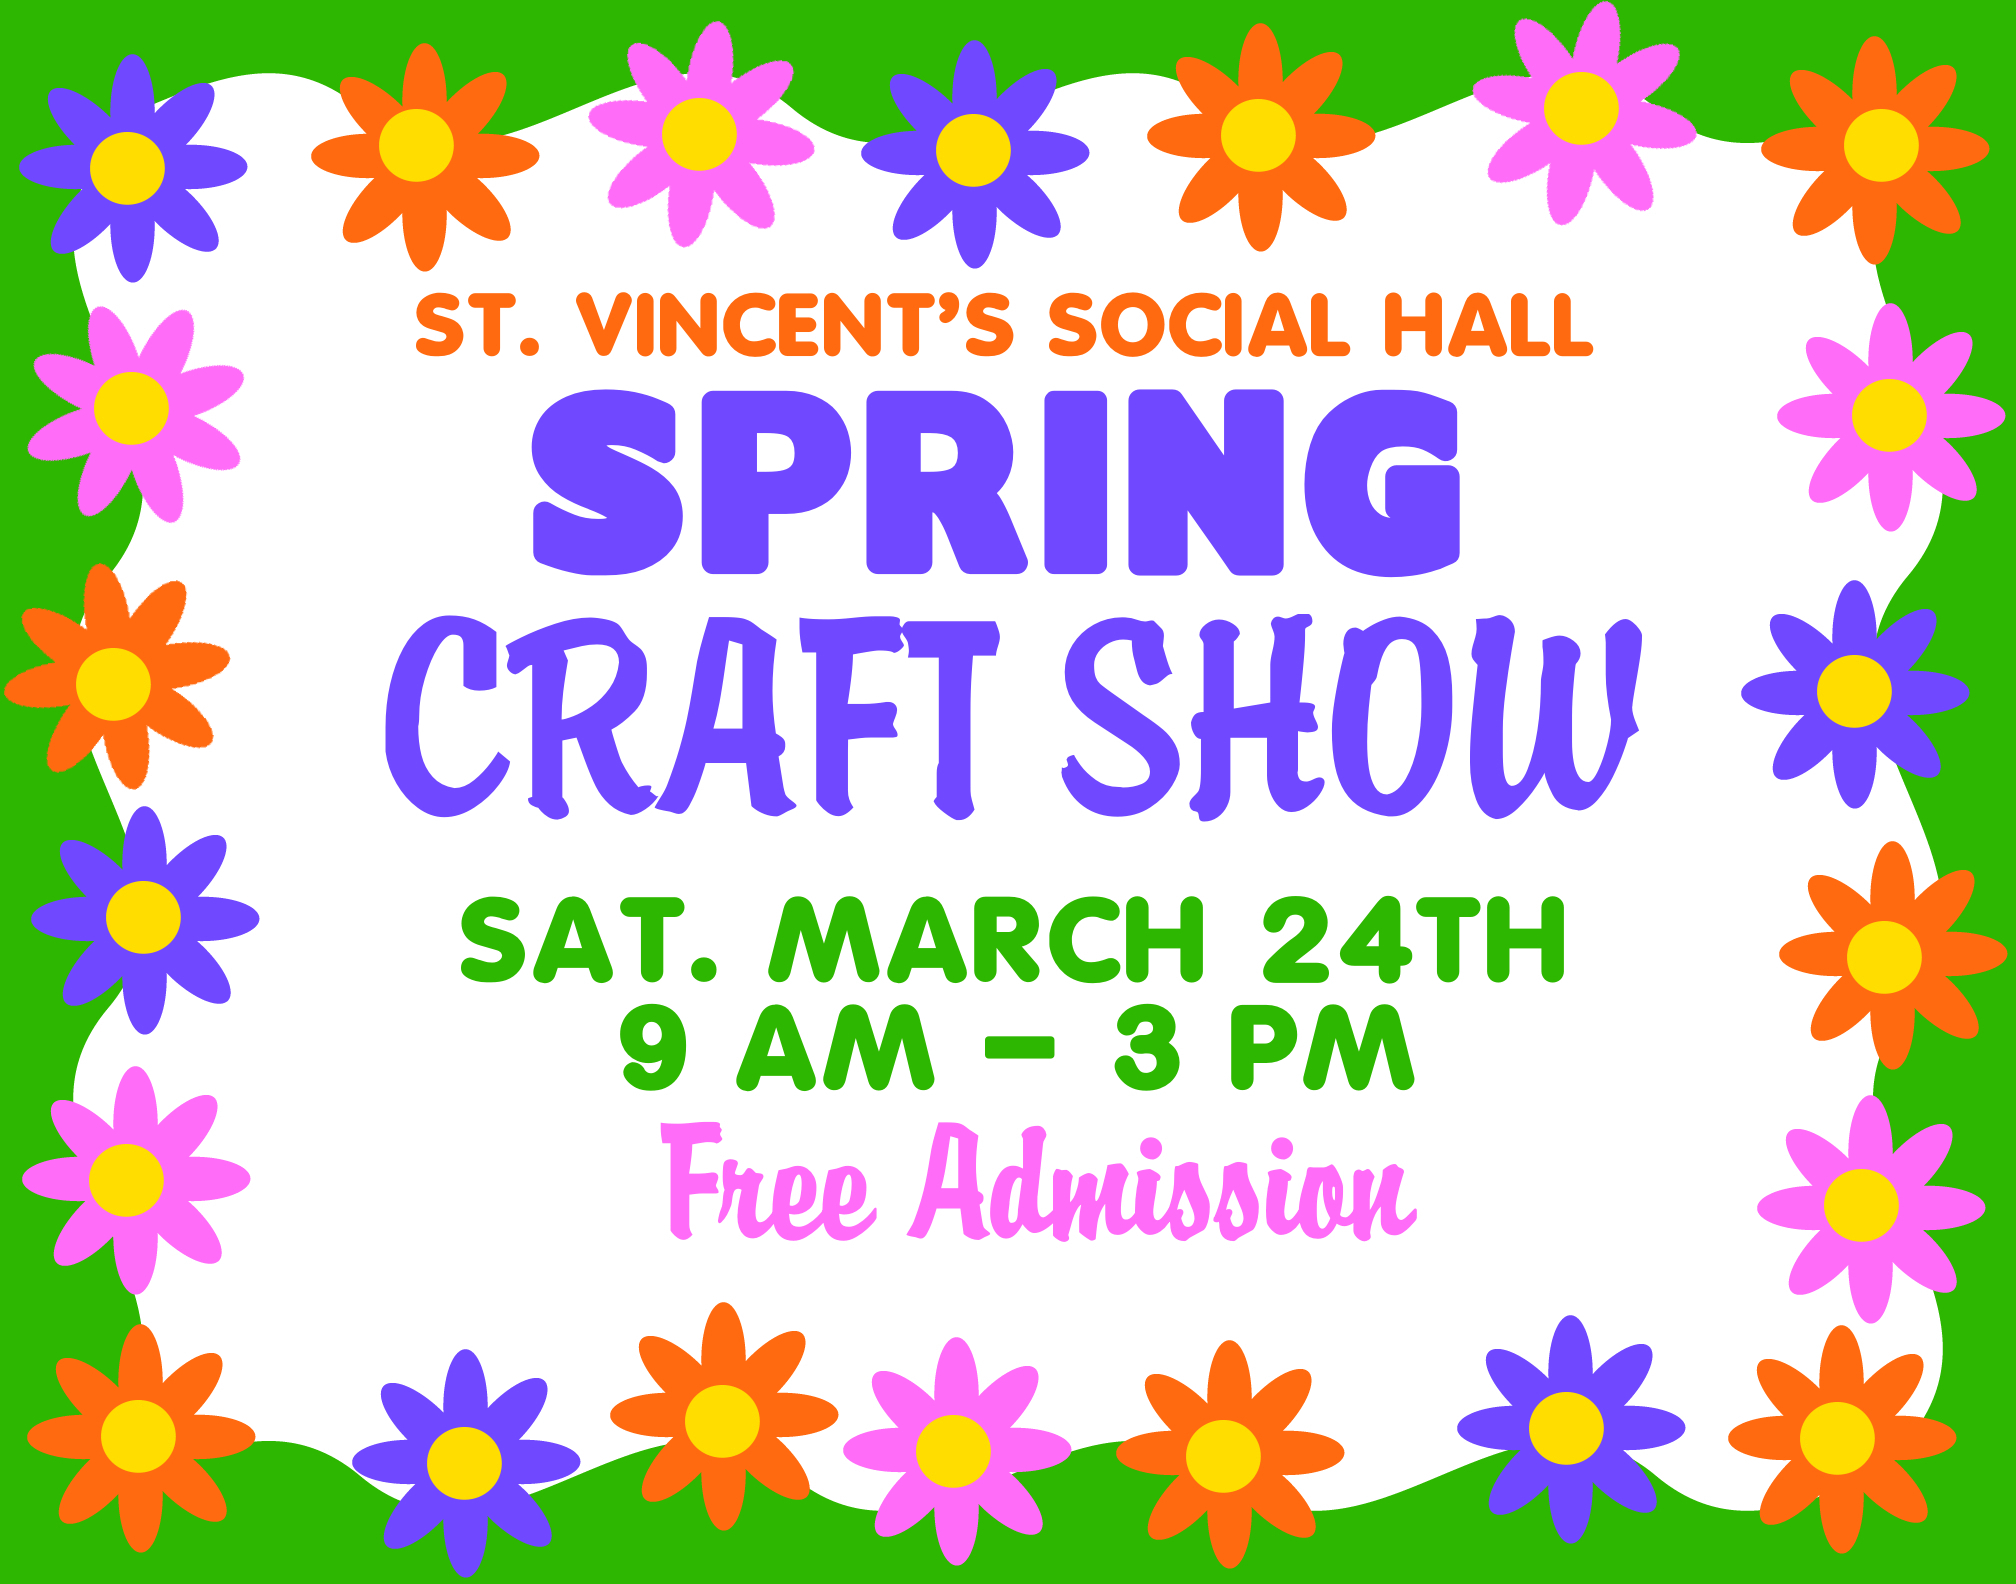 Make A Craft Show Poster Sring Event Poster Ideas G69ckw